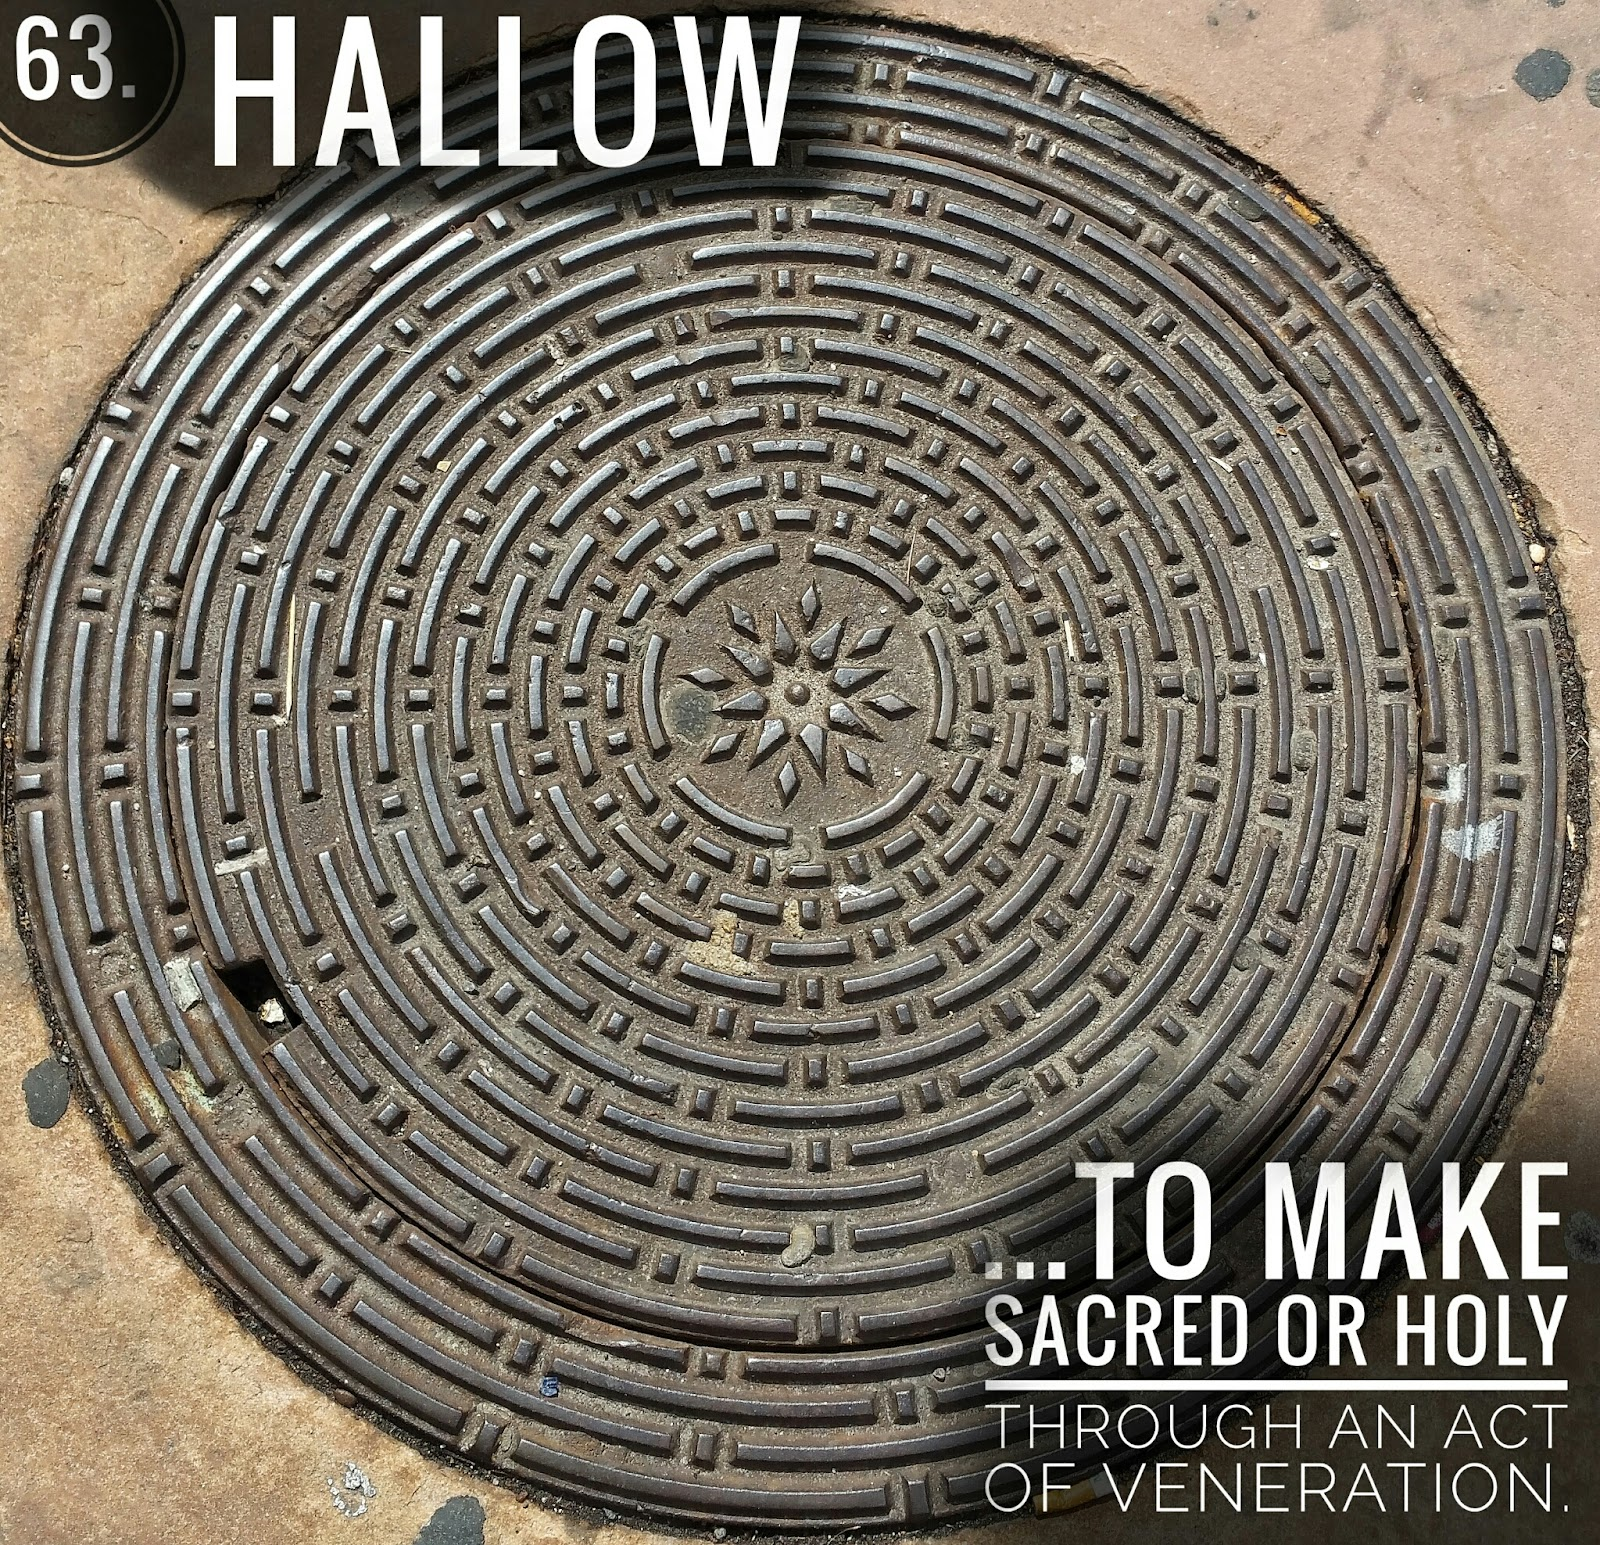 A manhole cover of interesting design along with text: 'hallow' and its meaning.